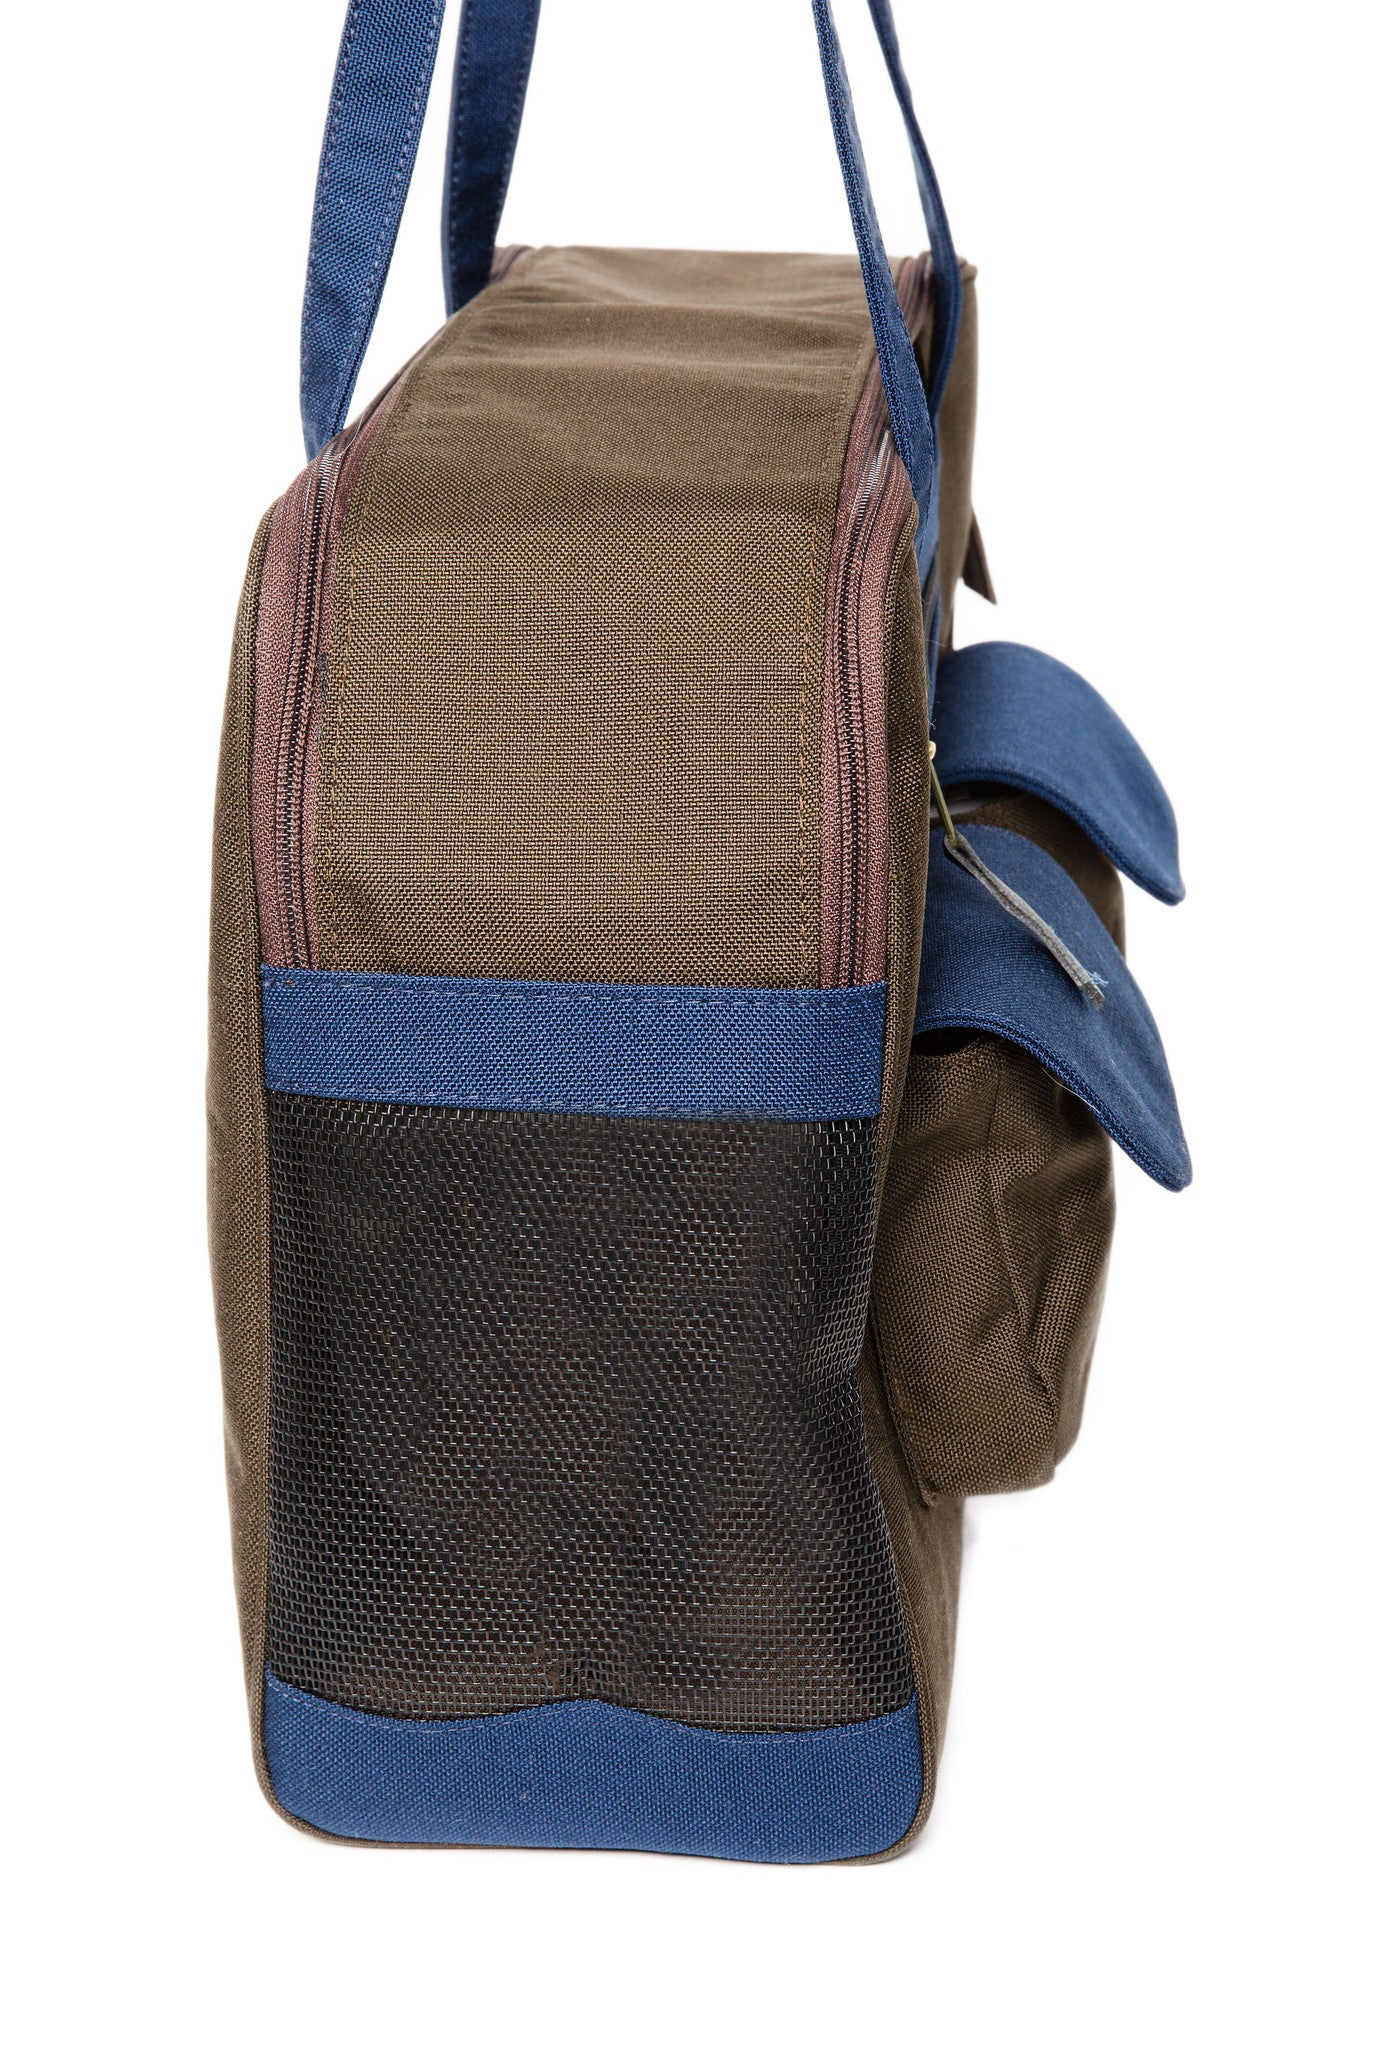 Dog Carrier - Winter Chocolate Canvas, Colored Canvas Trim, 3 Colors